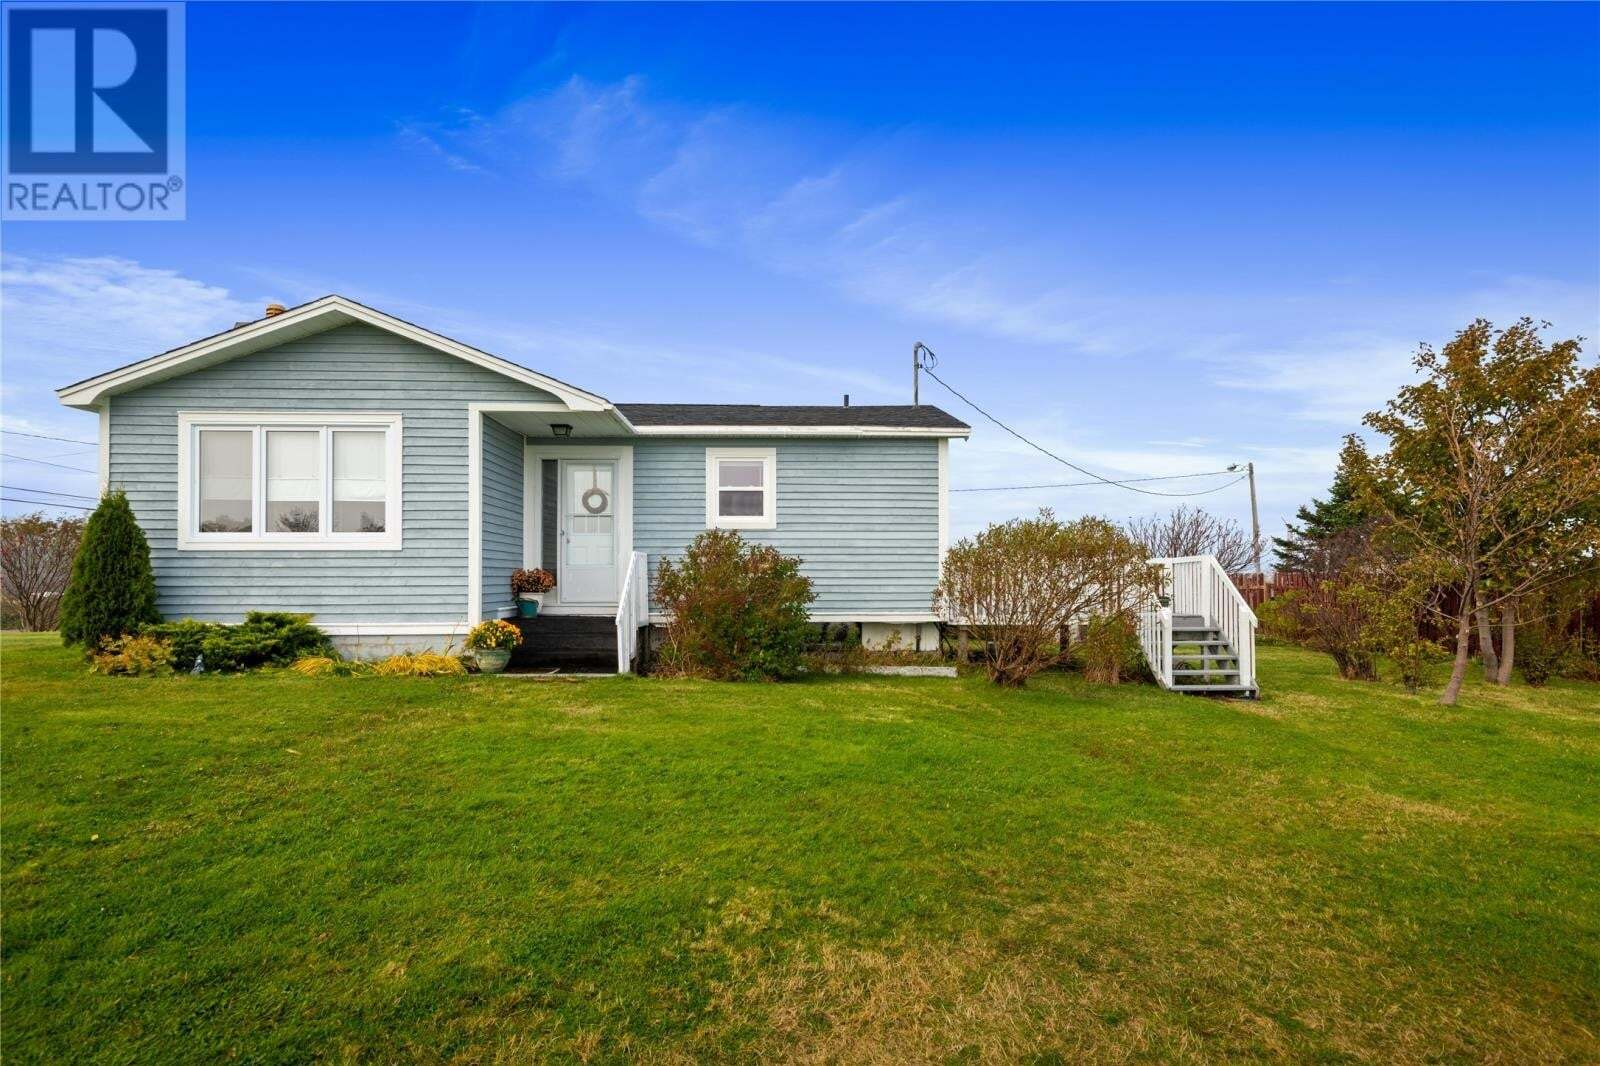 House for sale at 792 Main Rd Pouch Cove Newfoundland - MLS: 1222501